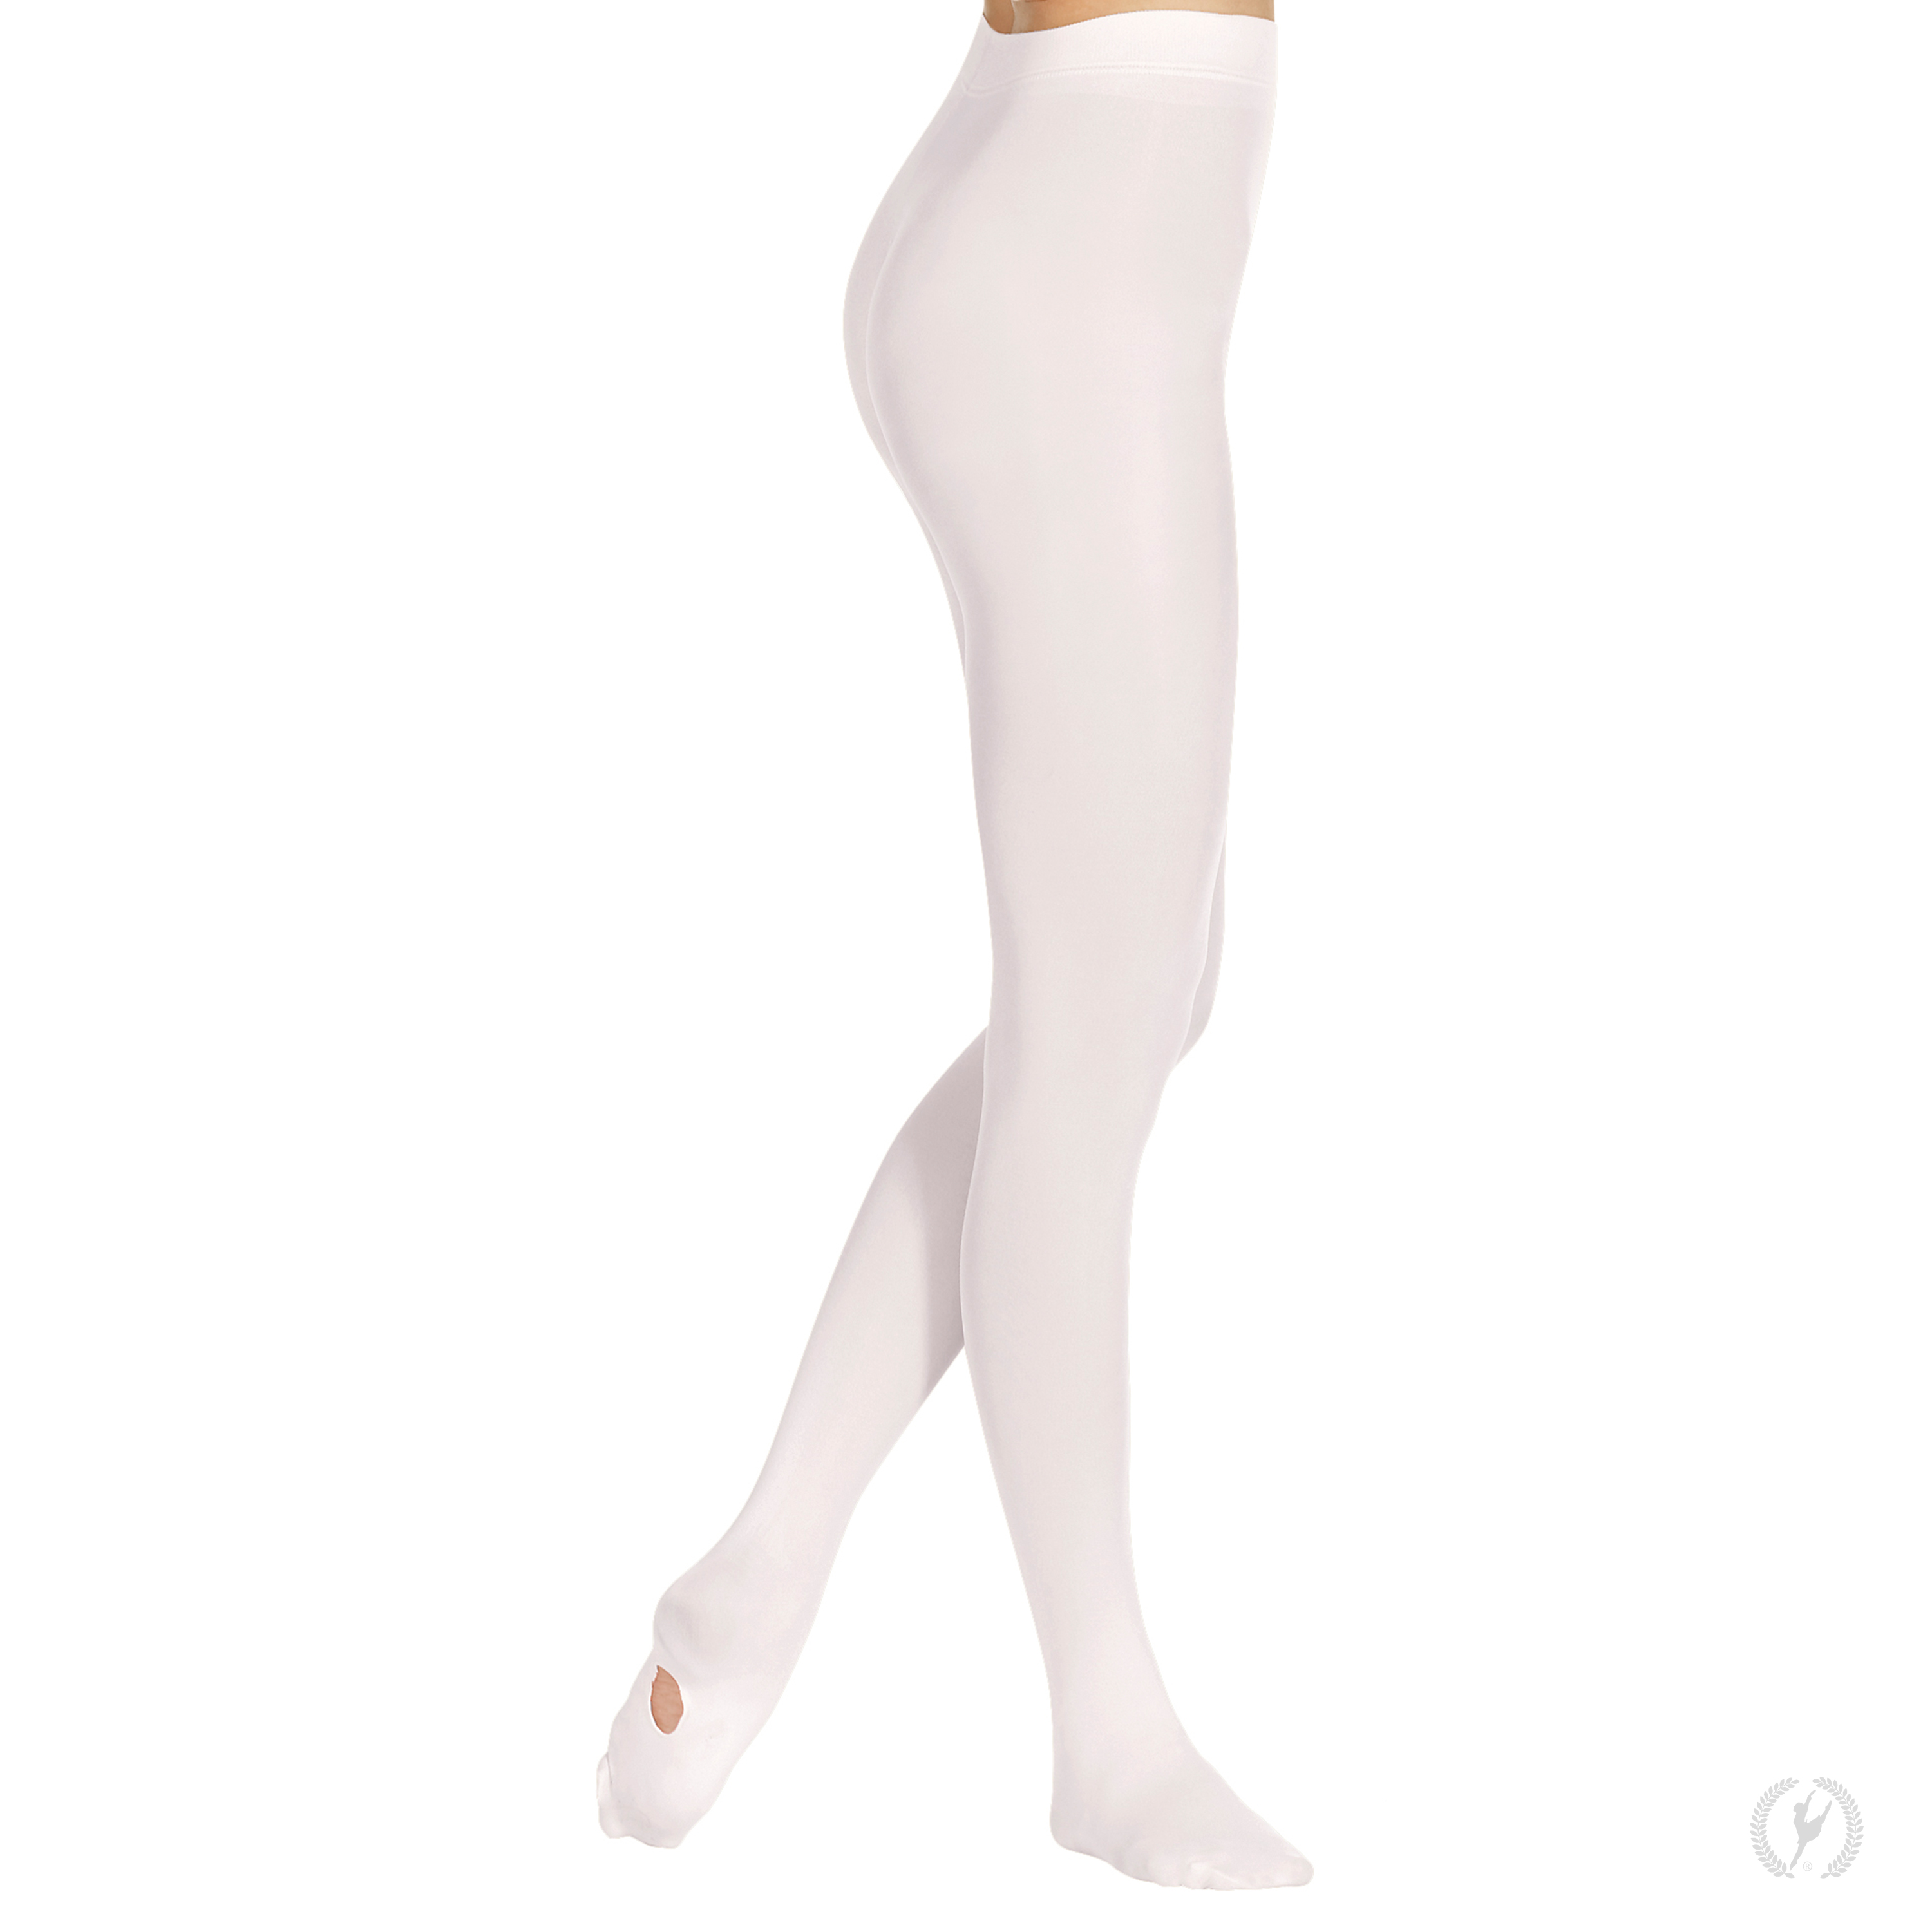 36c0b0ee7e5da 210 - Eurotard Womens Non-Run Convertible Tights with Soft Knit Waistband  by EuroSkins